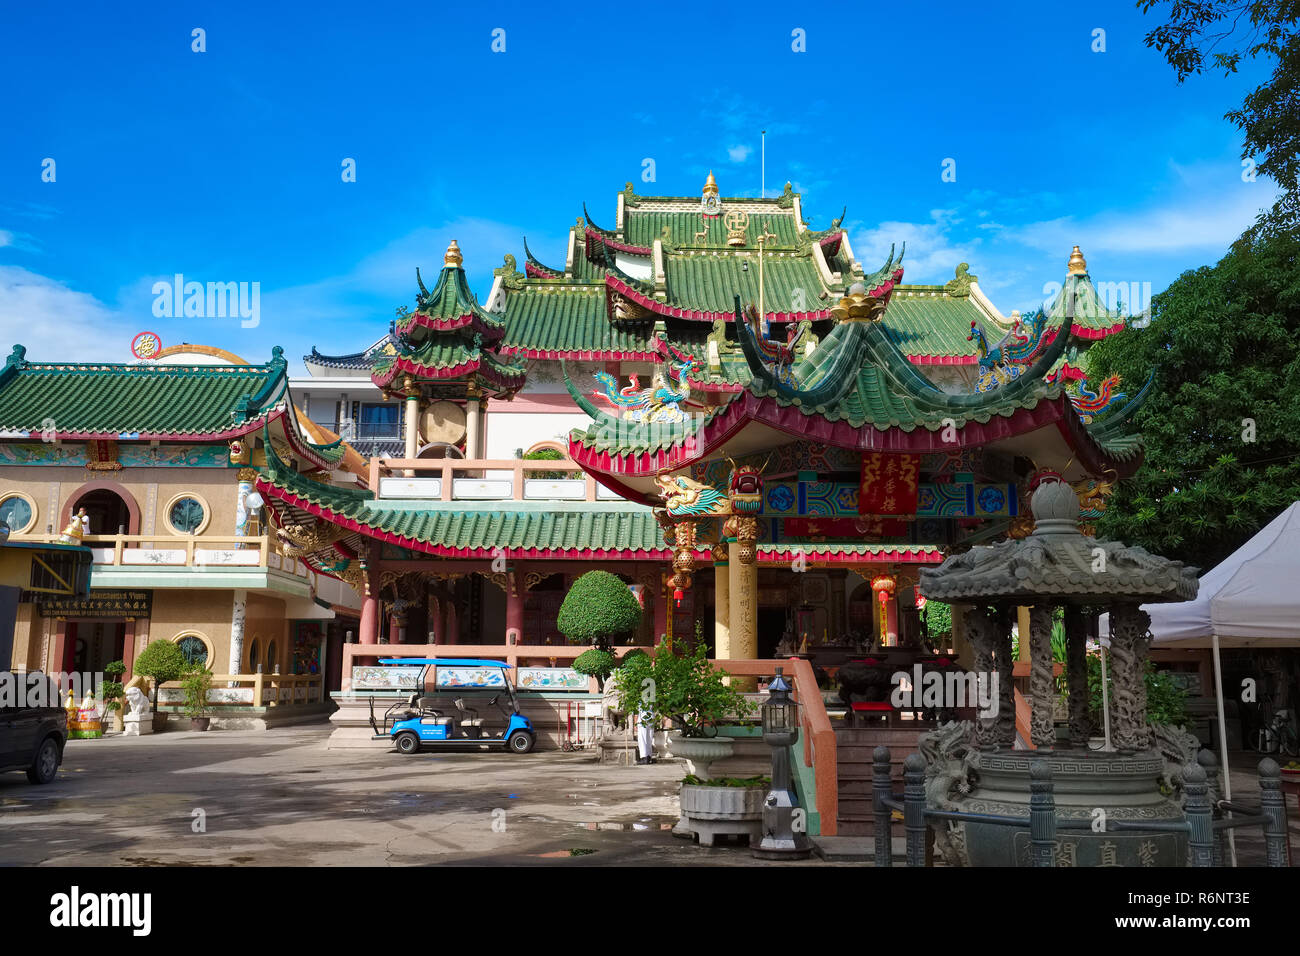 Chee Chin Khor Temple by the Chao Phraya River, in Bangkok, Thailand, a Chinese Buddhist temple built by the charitable Moral Uplifting Society - Stock Image